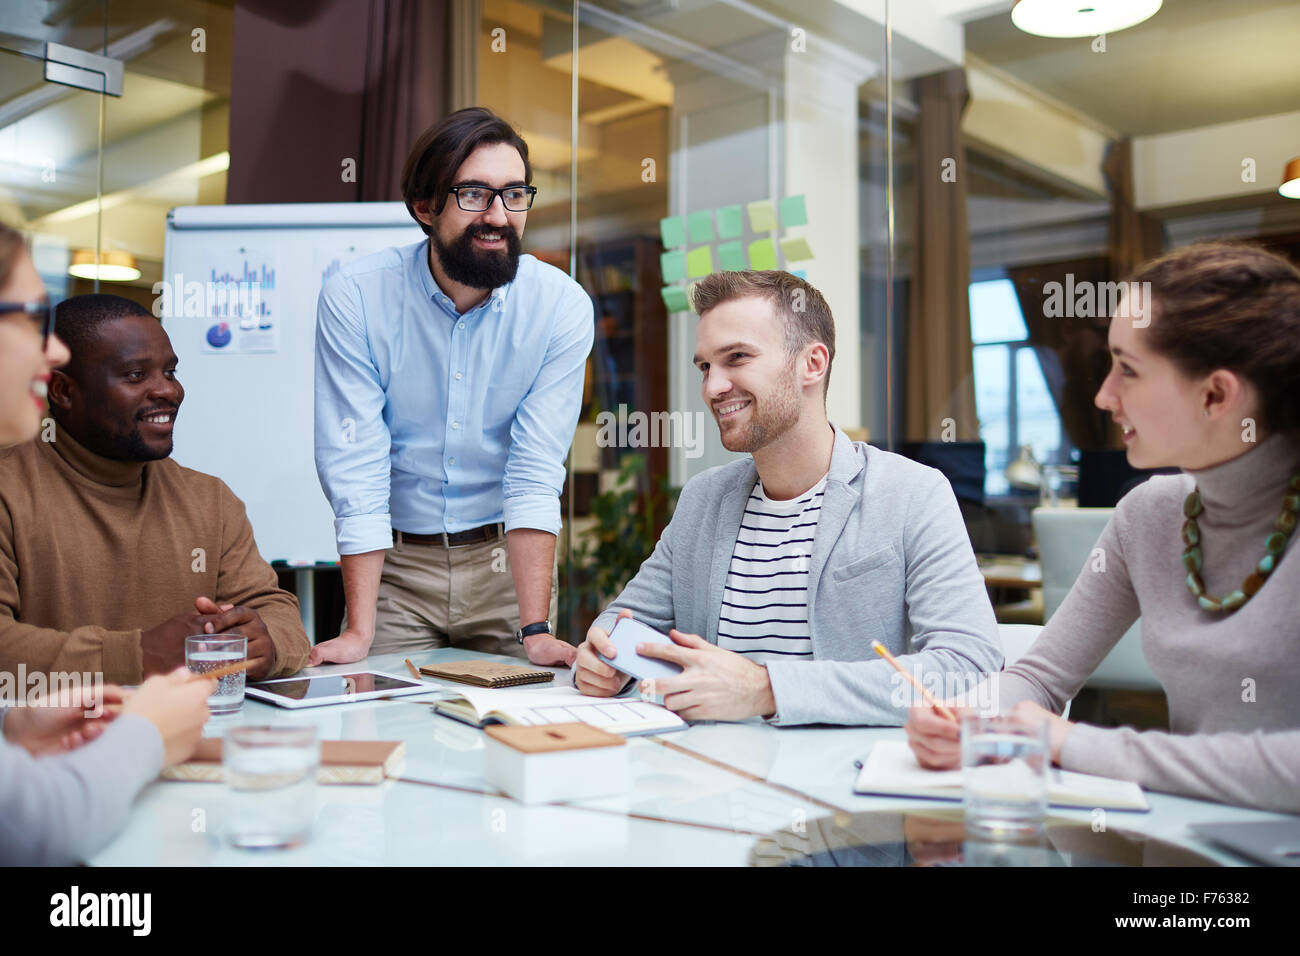 Group of office workers having meeting - Stock Image